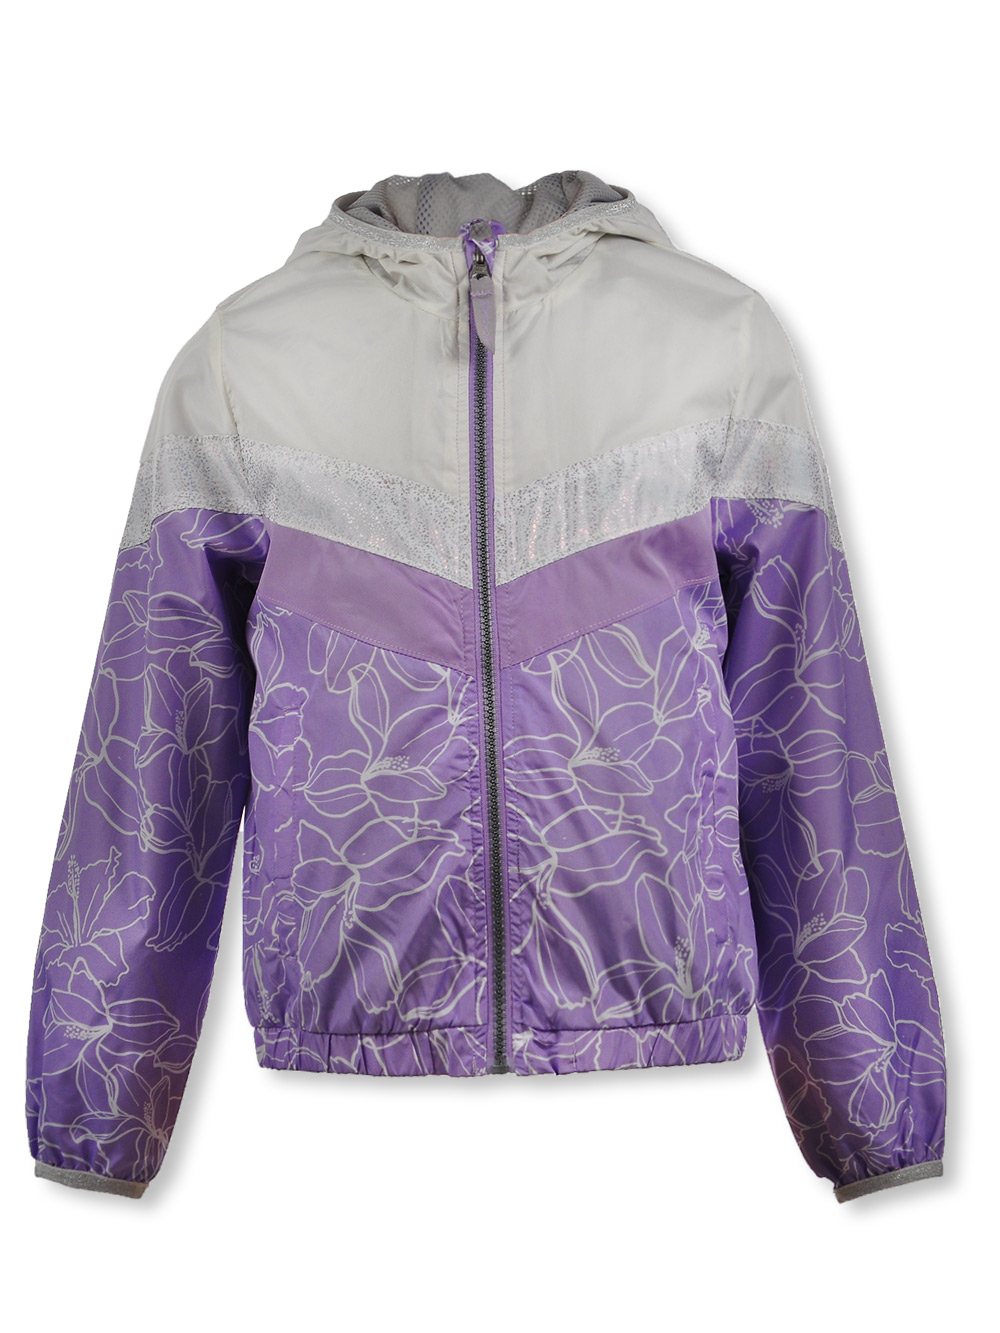 Size 14-16 Outerwear for Girls